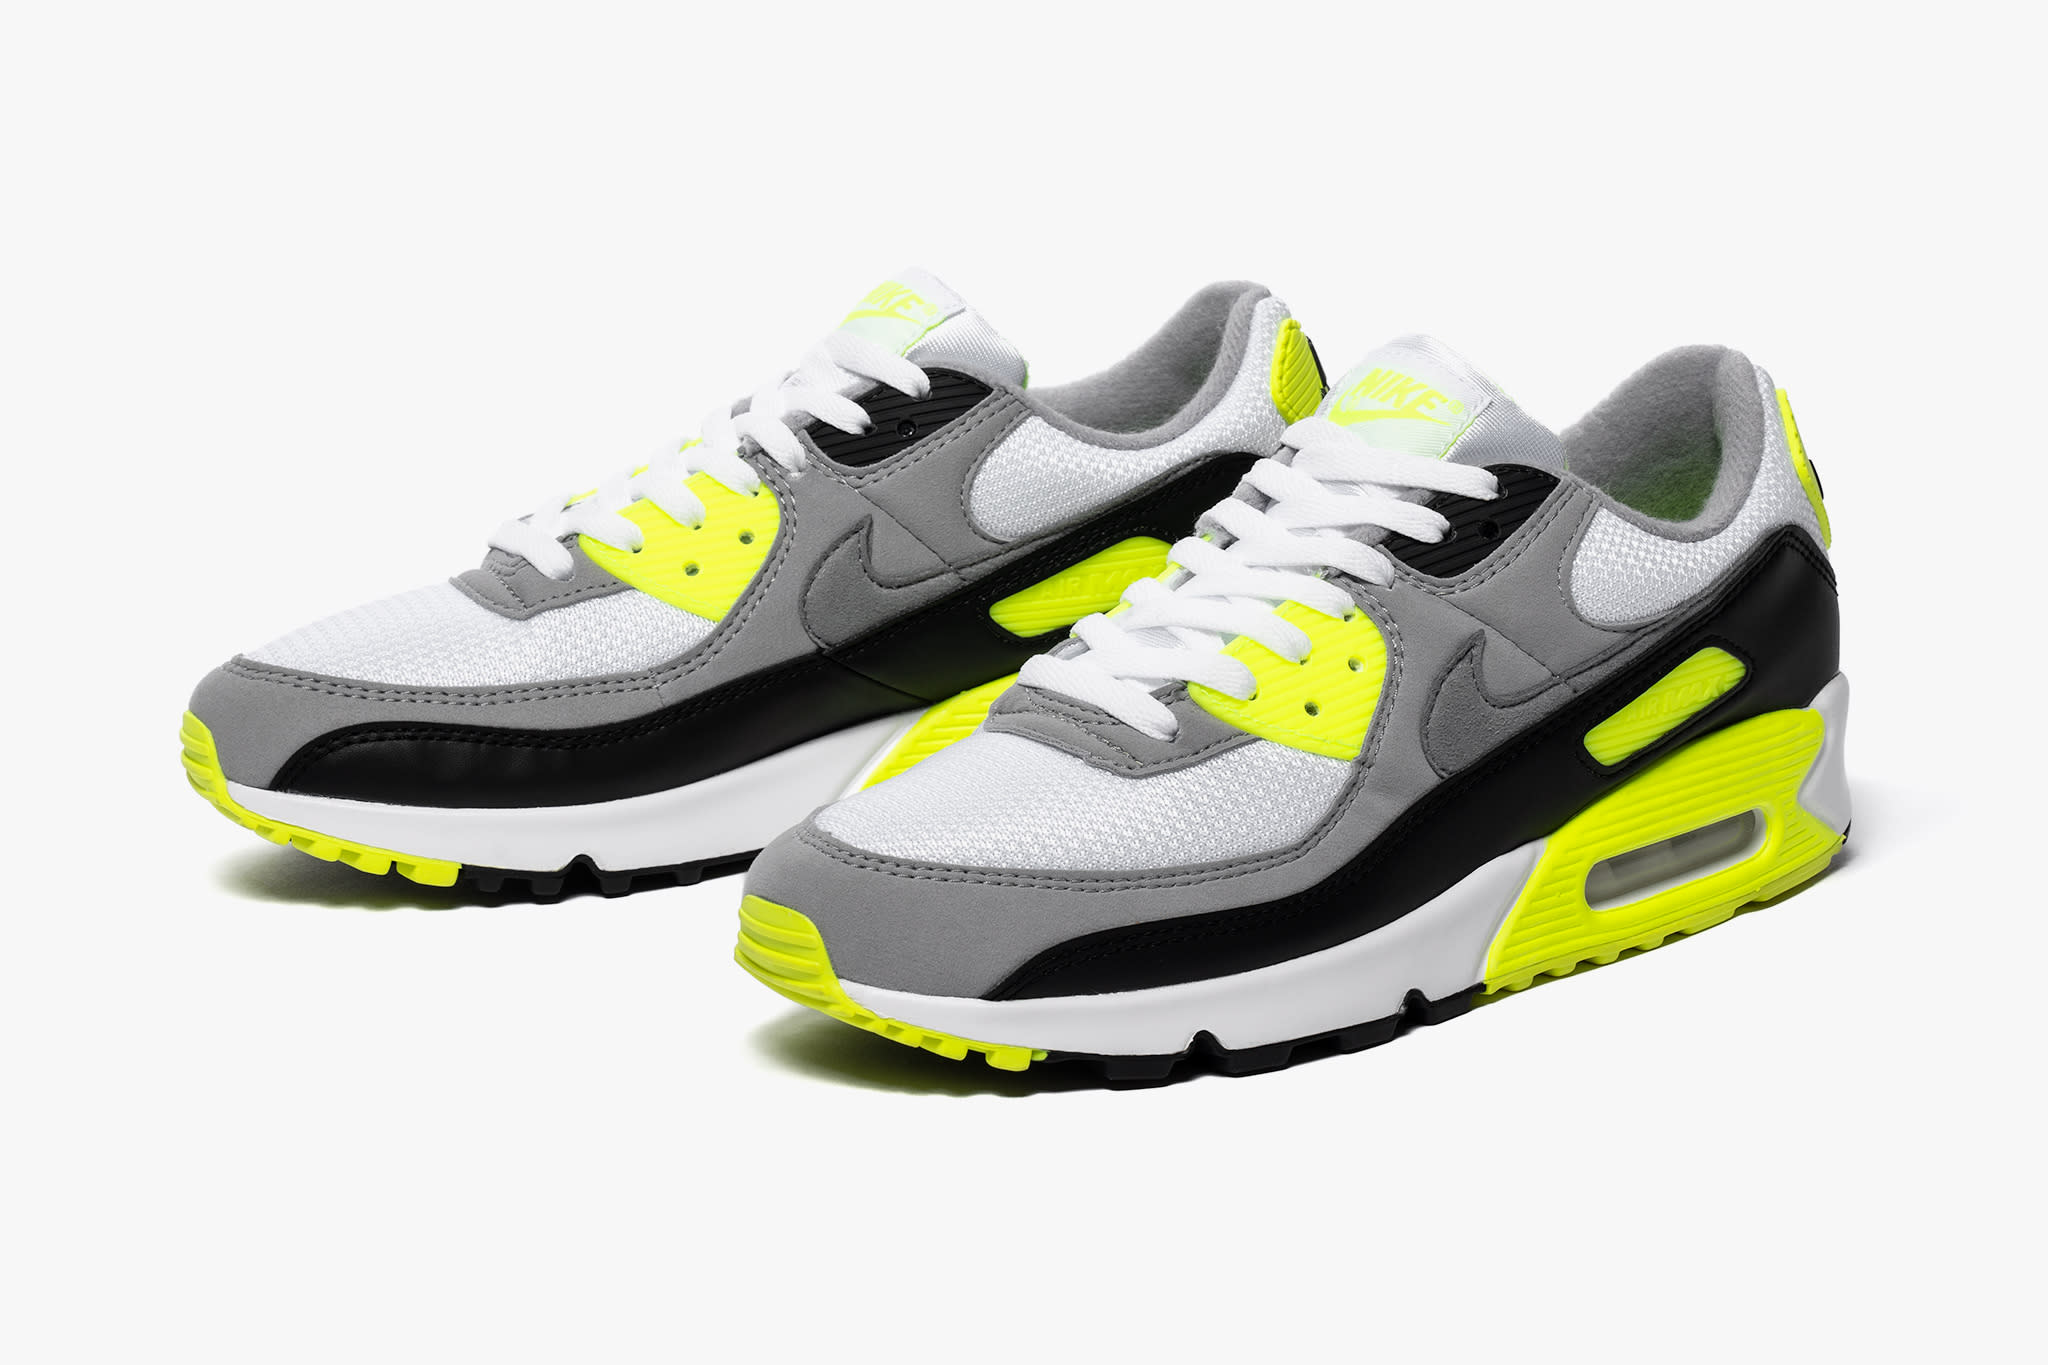 Nike Air Max 90 OG Volt | Available Now | HAVEN